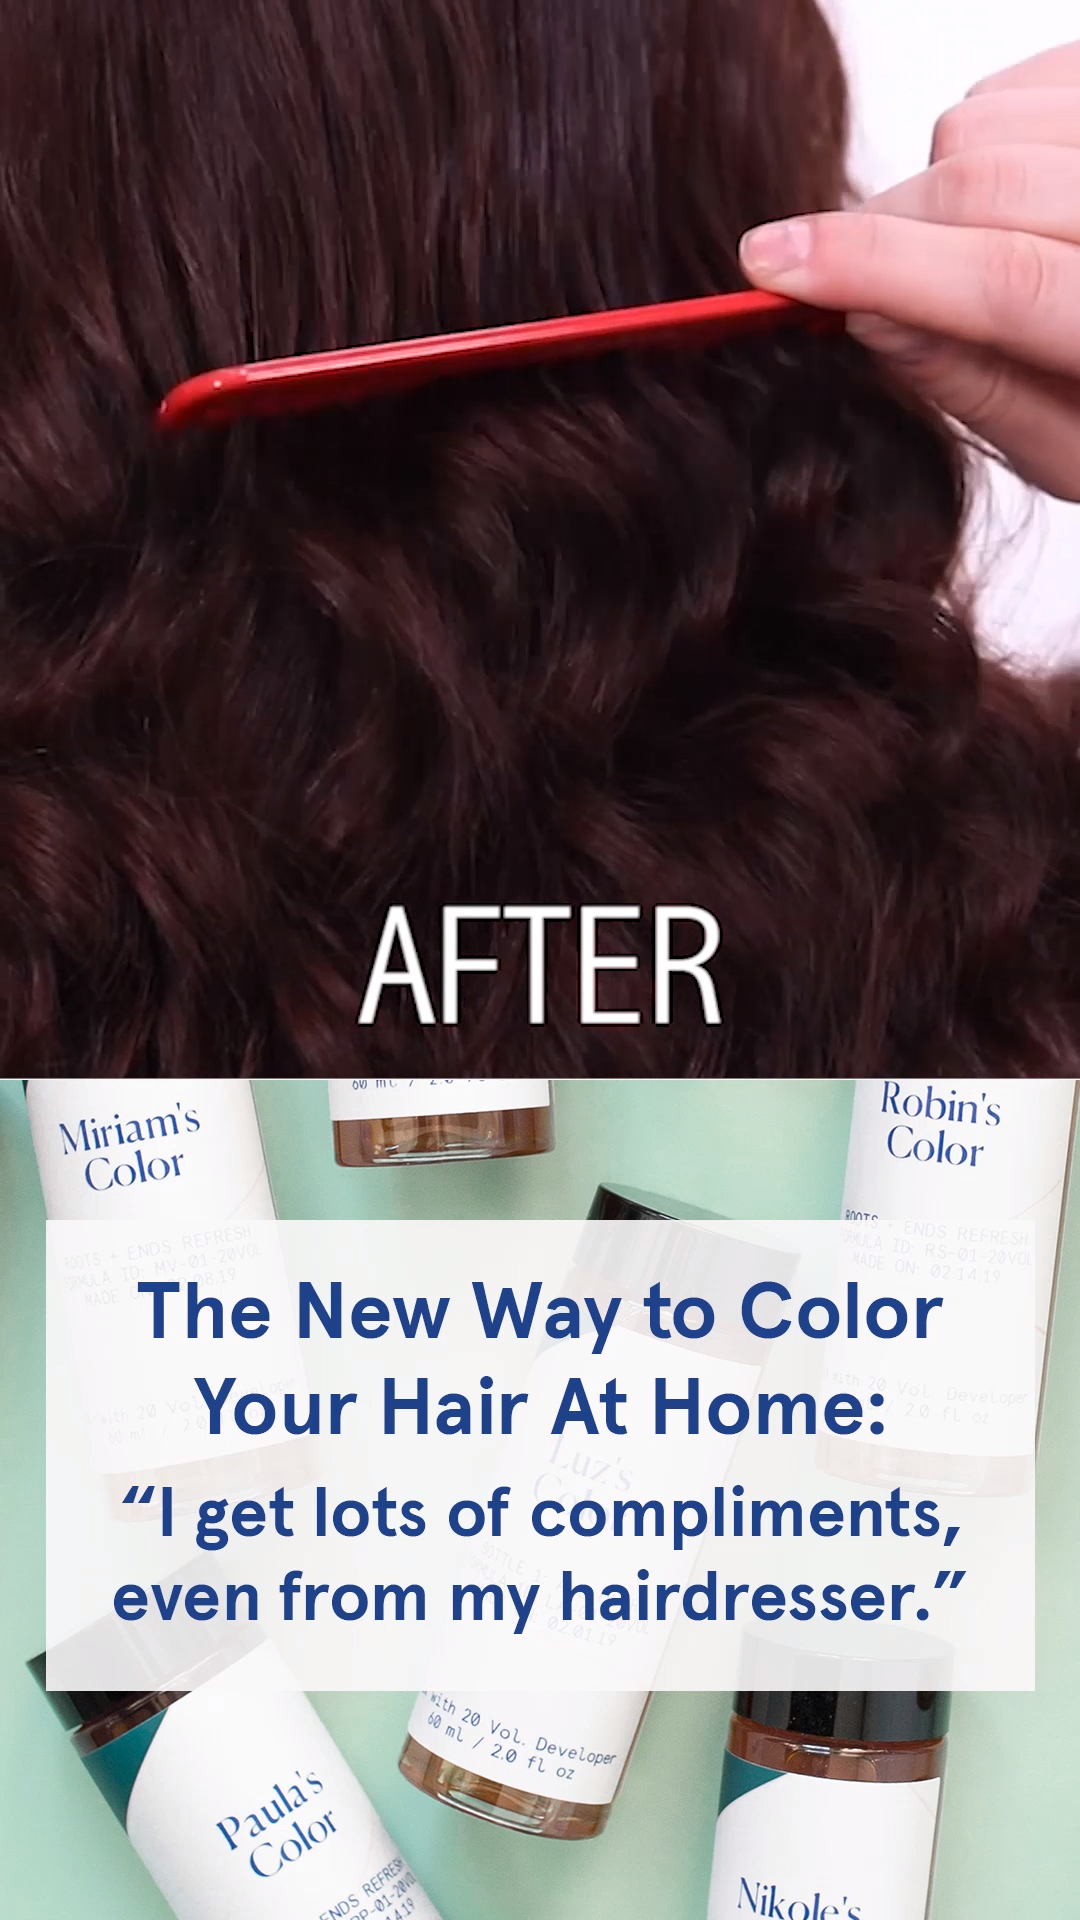 Ditch The Generic Drugstore Box And Try This New Diy Hair Color It Was The Exa In 2020 Diy Hair Color Hair Color Diy Hairstyles